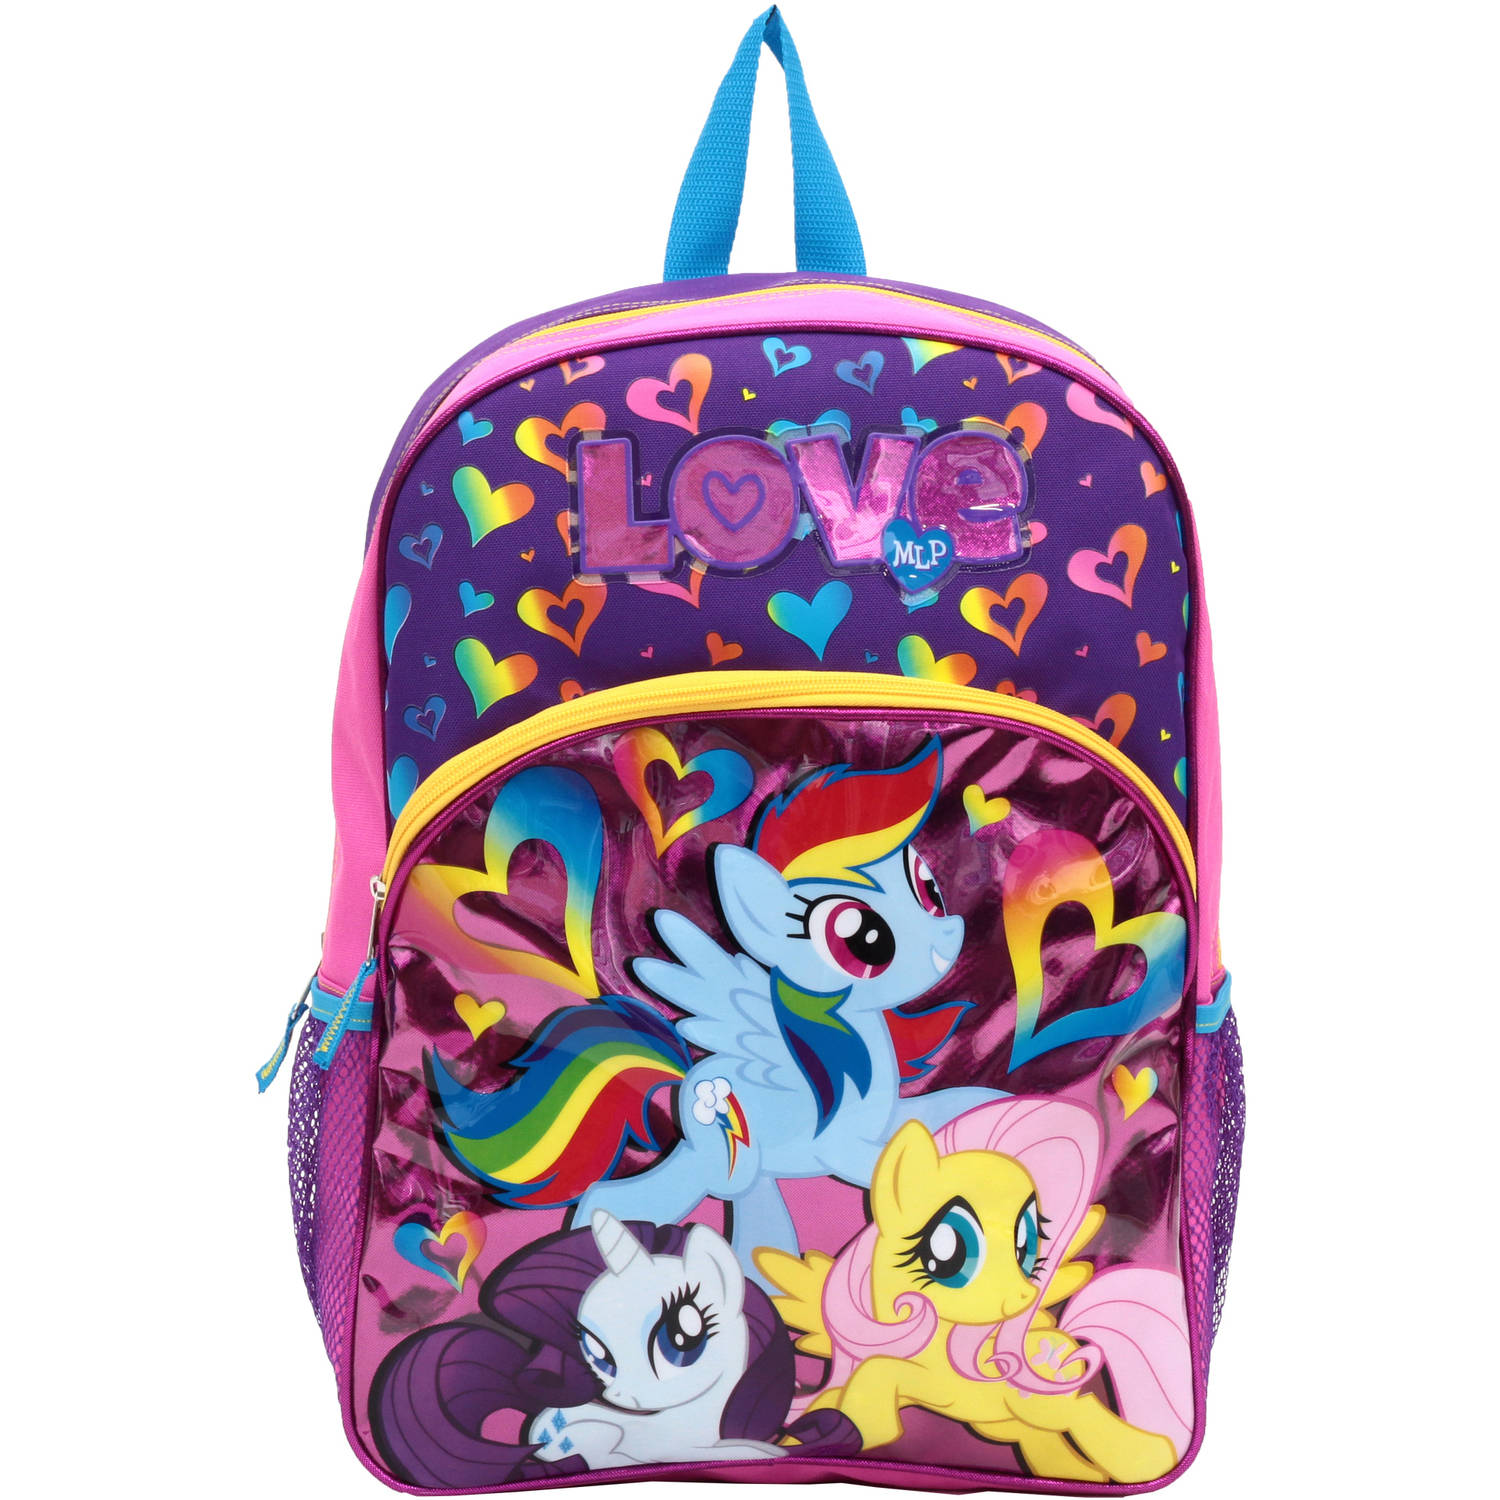 Little Kids Backpacks BsVdGgKp